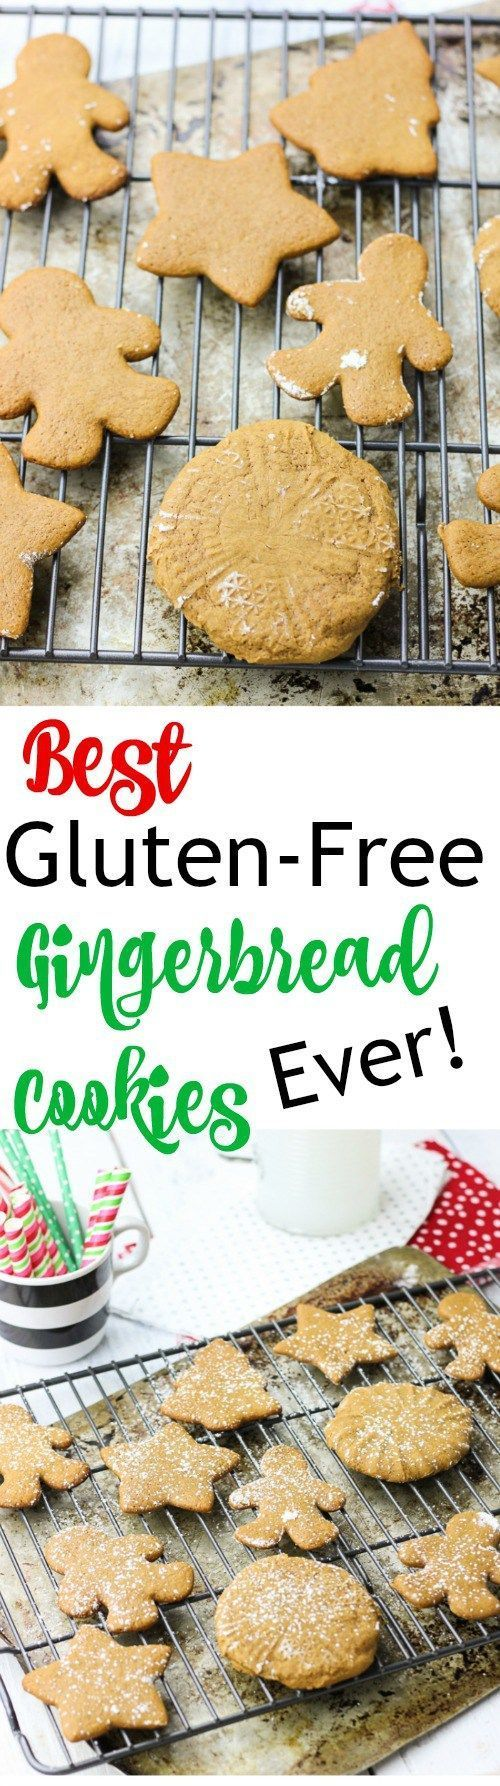 These are the best gluten-free gingerbread cookies you will find!  These gluten-free gingerbread cookies are soft, moist, and shapeable, can be easily prepped ahead of time, and are sweet and delicious, just like gingerbread cookies should be!  Say goodbye to crumbly, tasteless, cardboard gluten-free cookies just in time for Christmas! www.BlessHerHeartYall.com